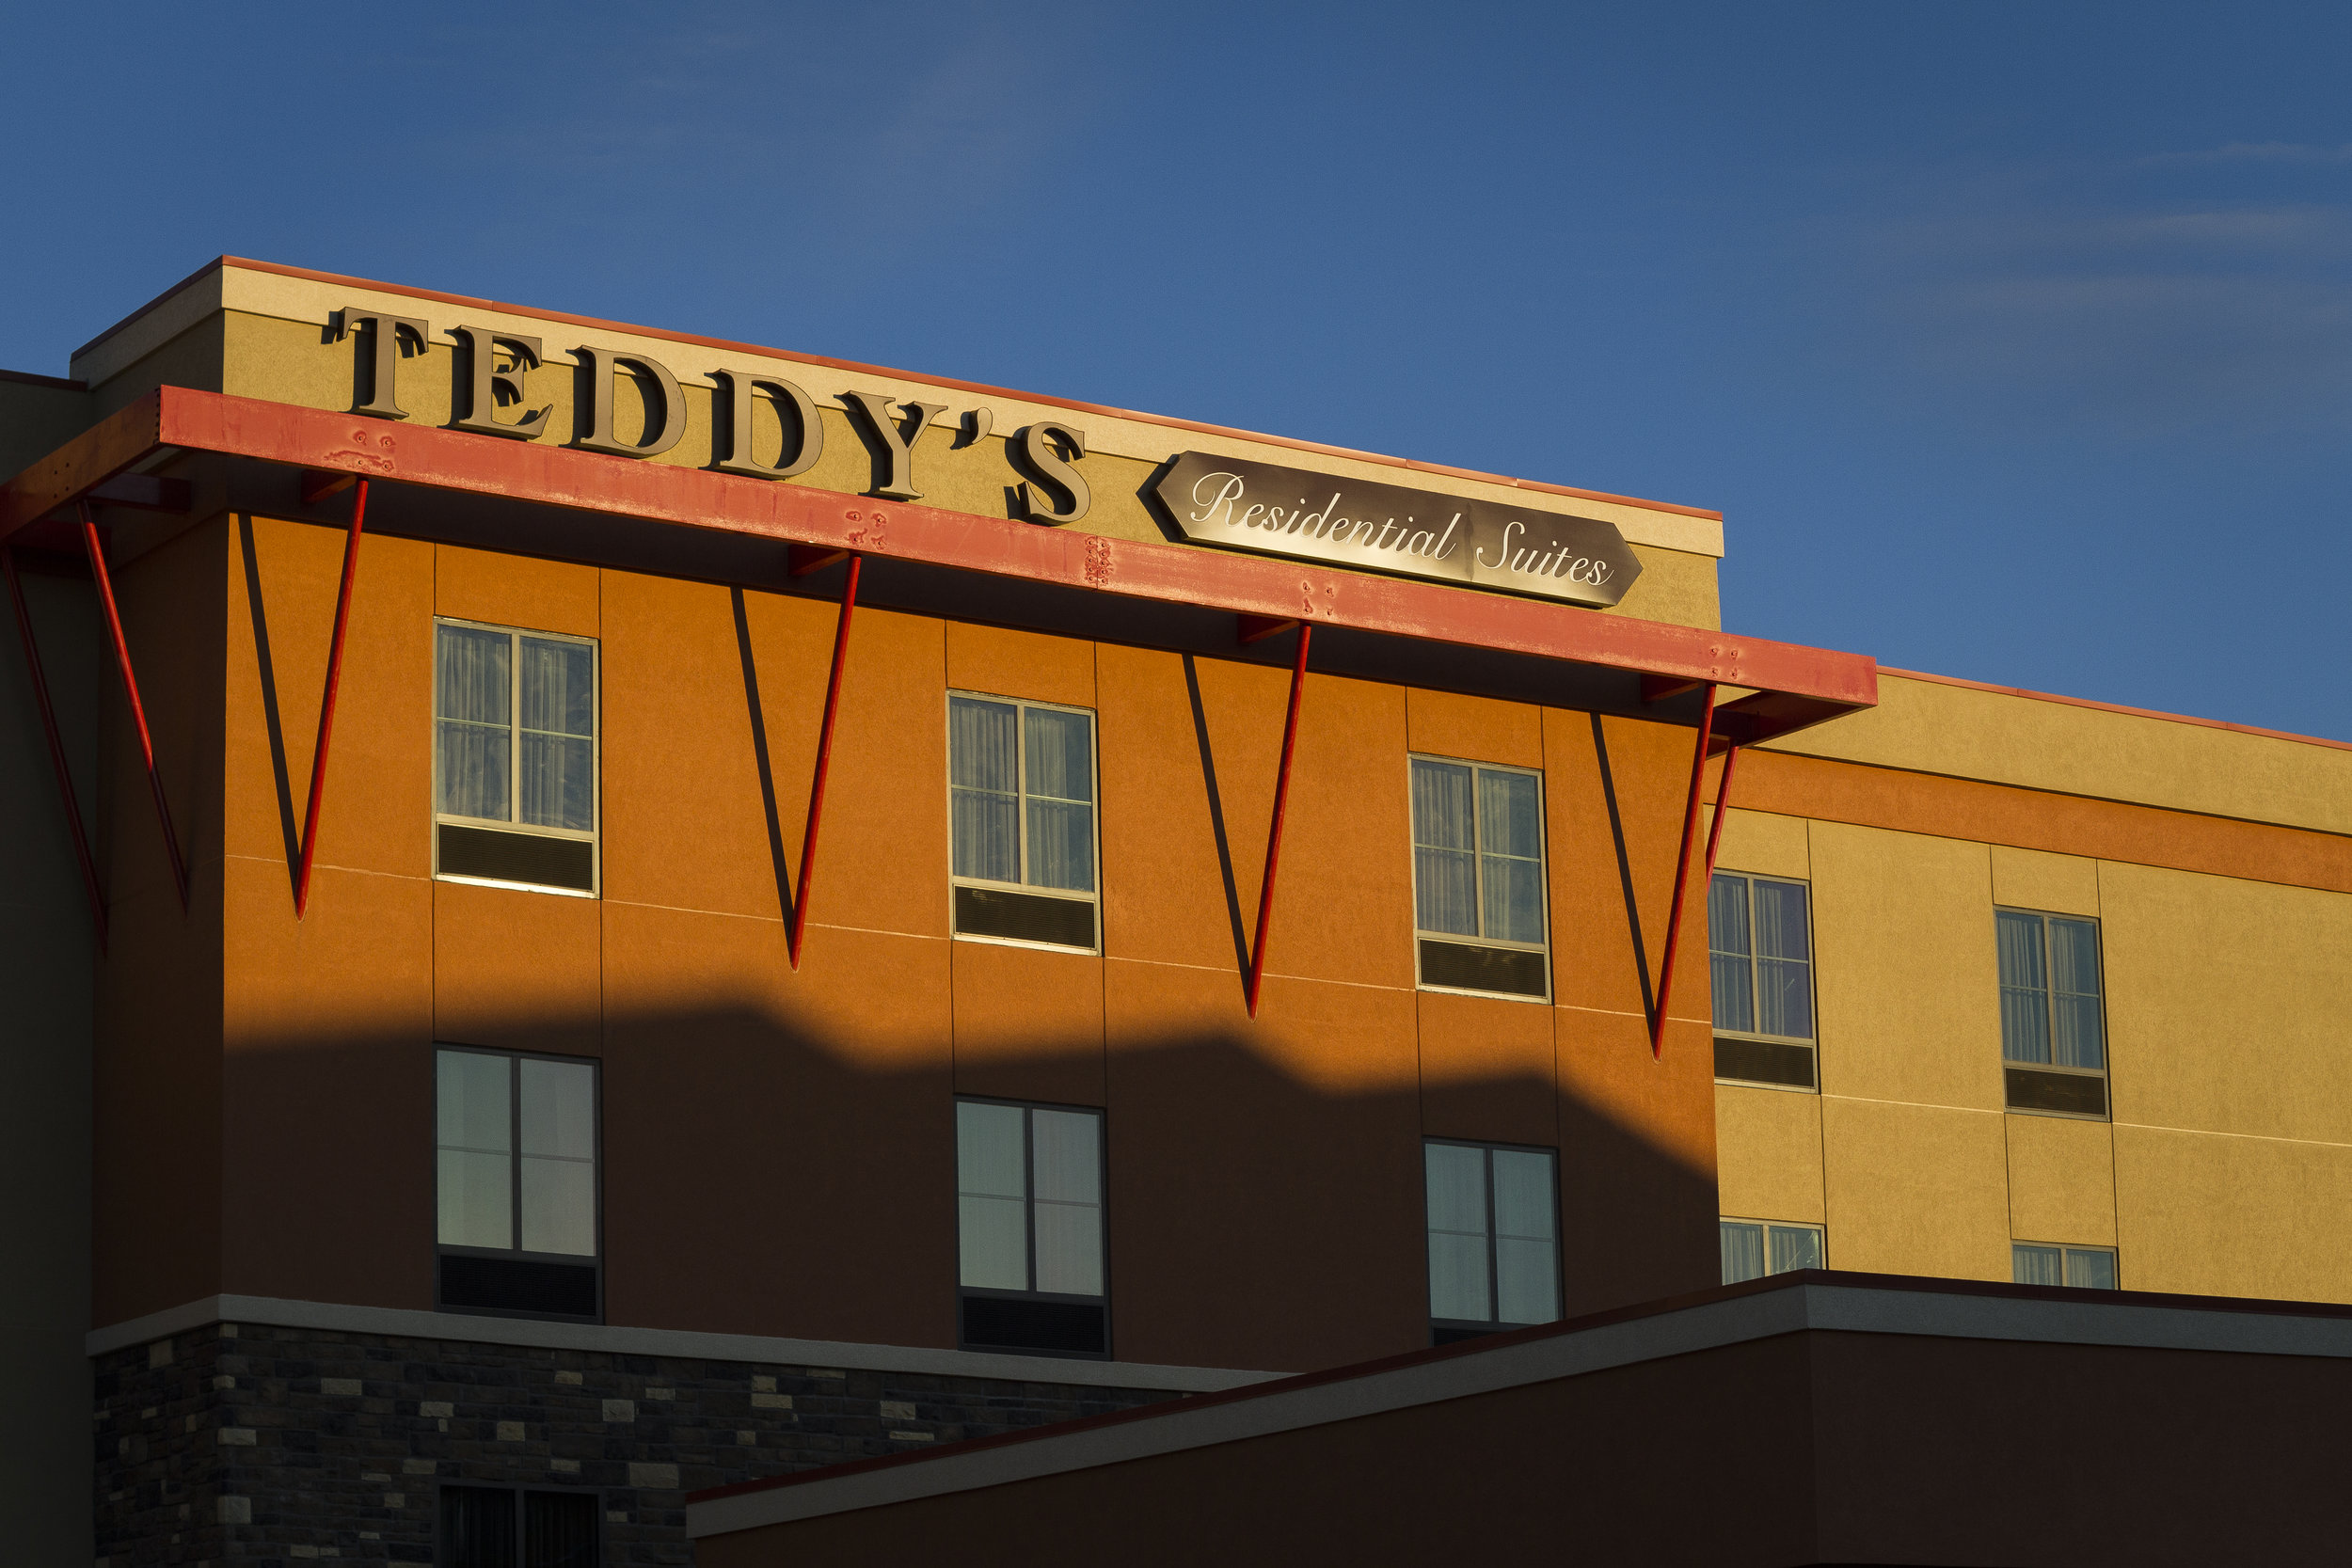 Outside view of the Teddy's Residential Suites in Watford City, ND